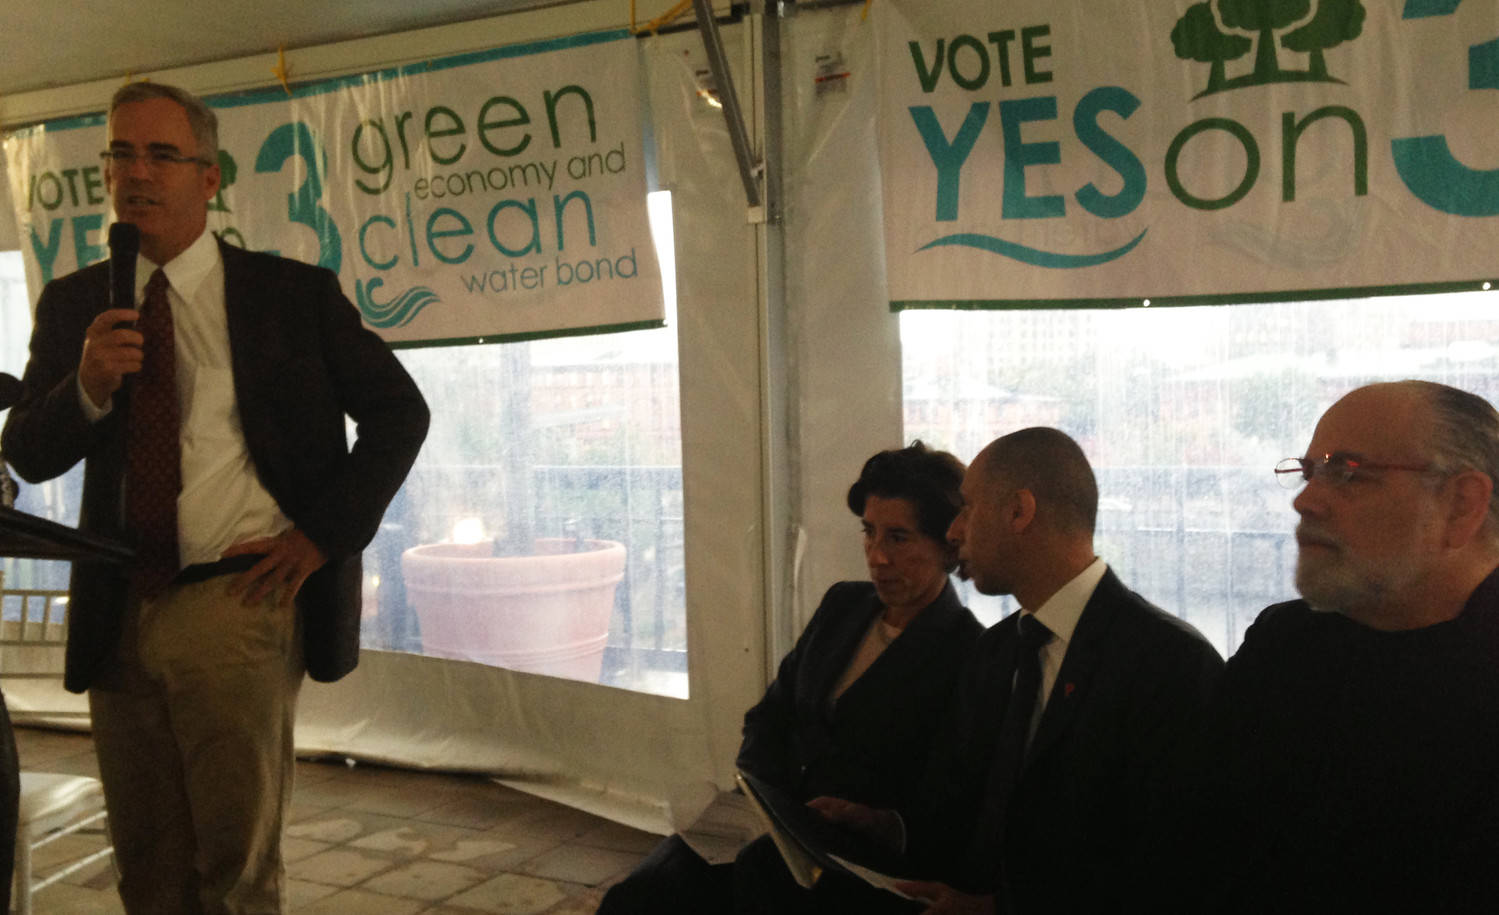 Jonathan Stone, left, executive director of Save The Bay, kicks off the Yes on 3 campaign on Friday, Oct. 12, including comments by Gov. Gina Raimondo, second from left, Providence Mayor Jorge Elorza, third from left, and Barnaby Evans, the creative director of WaterFire.